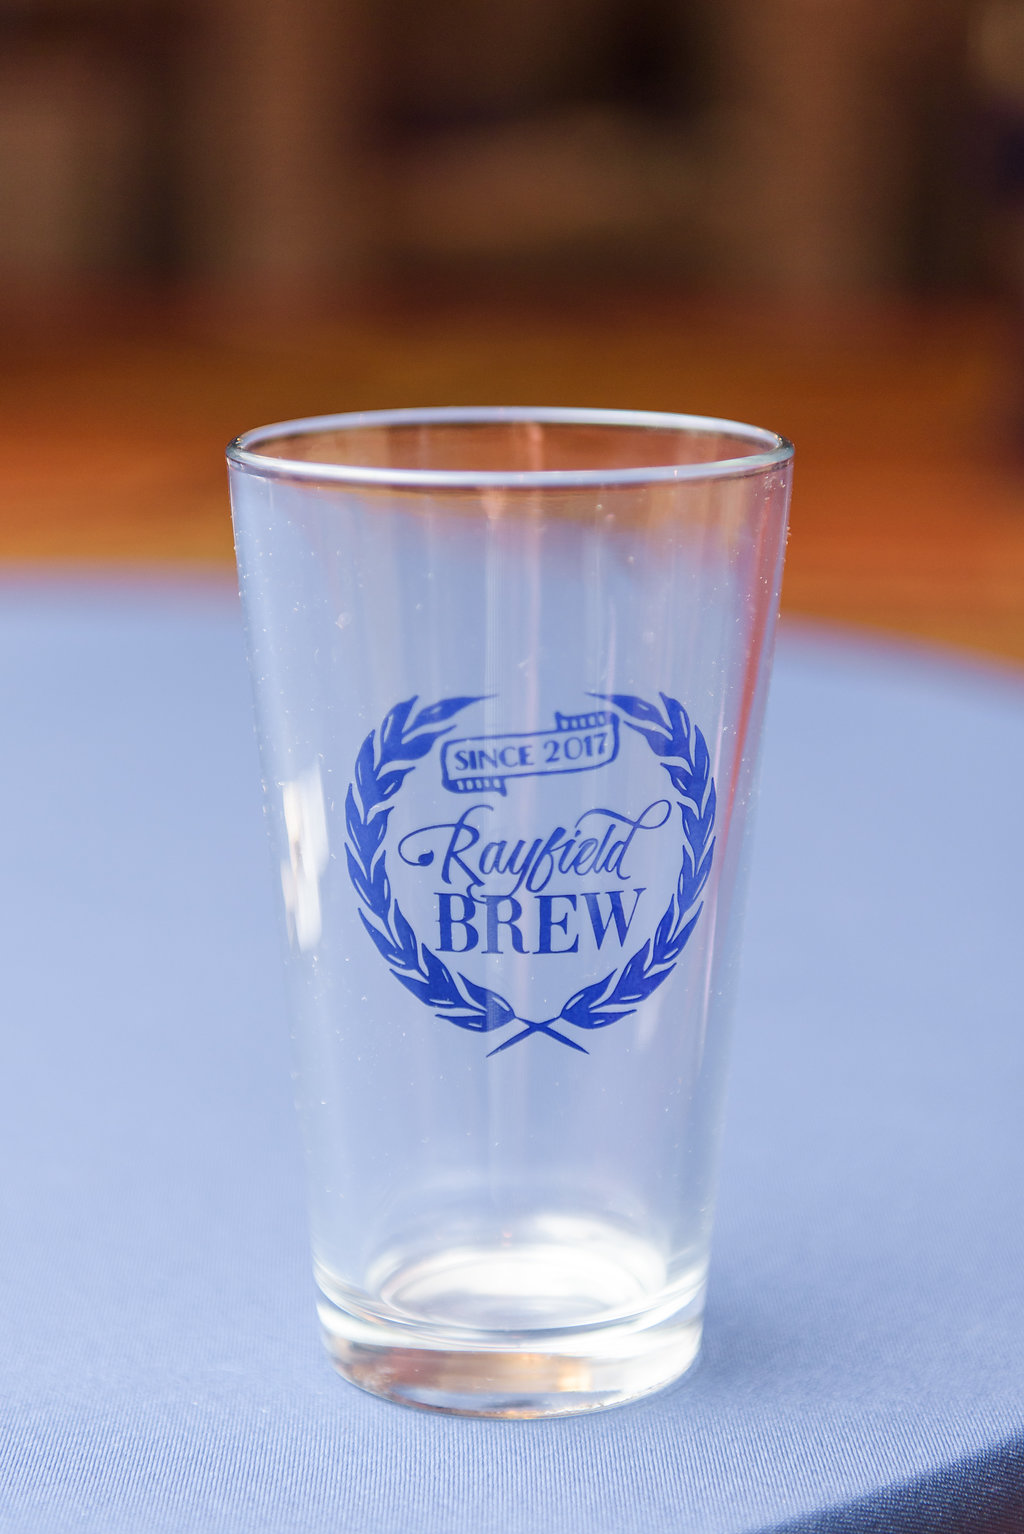 The custom pint glasses were perfect for the craft beer taps flowing at the bars.